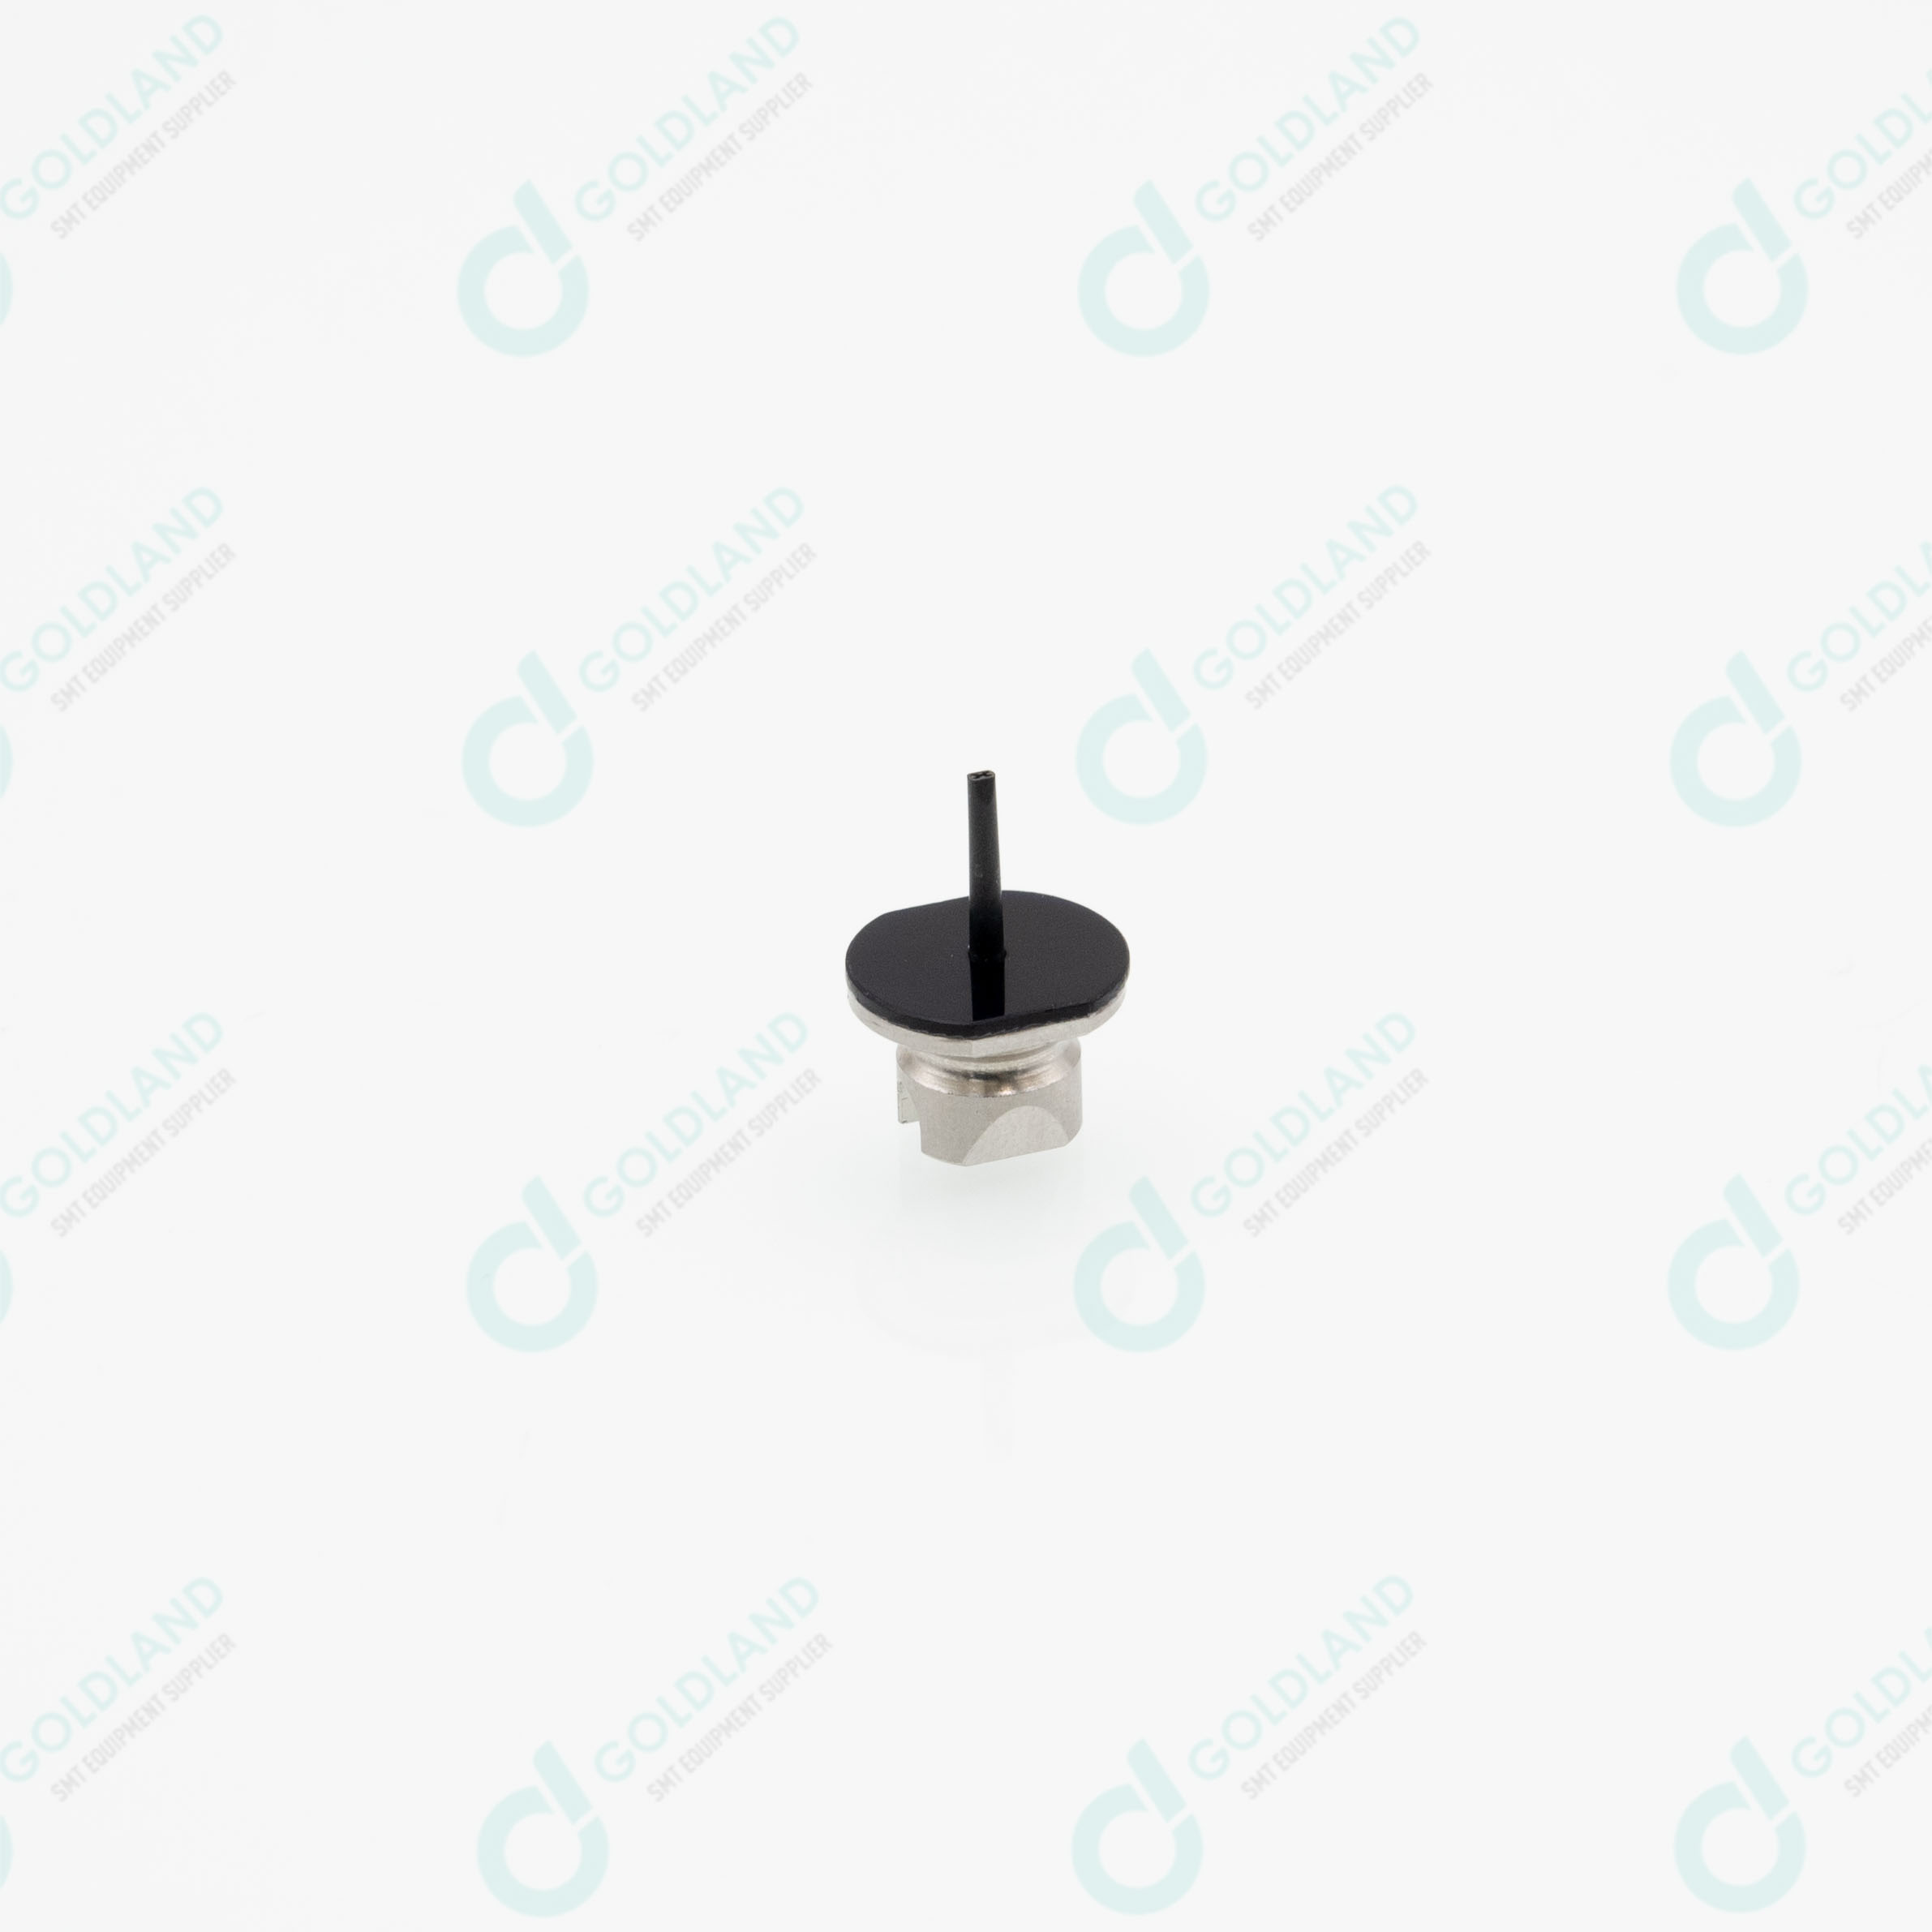 N610040788AA Panasonic 230CS Nozzle for Panasonic smt machine parts